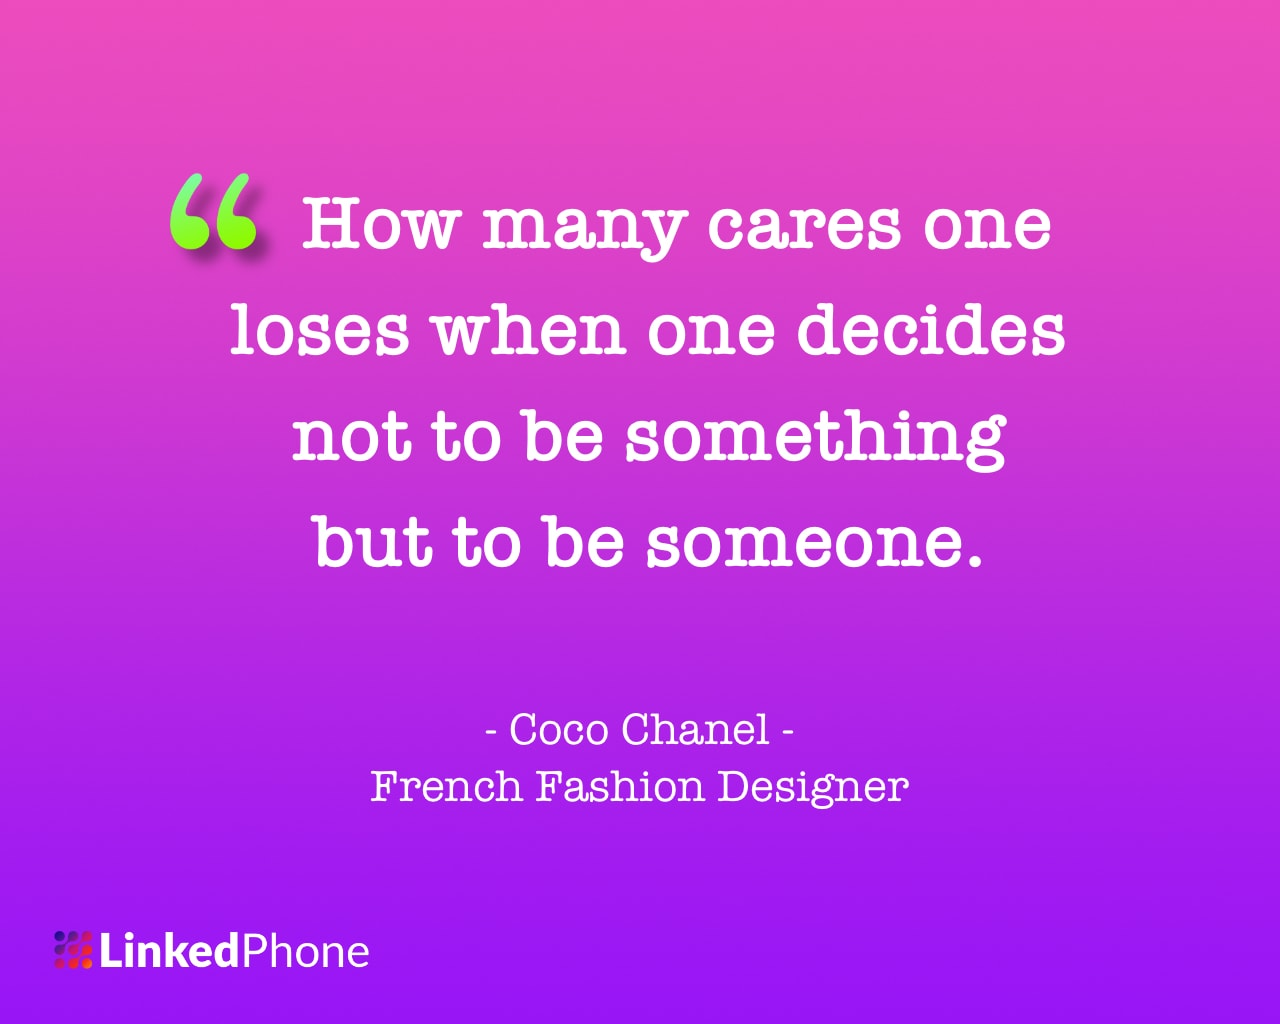 Coco Chanel - Motivational Inspirational Quotes and Sayings